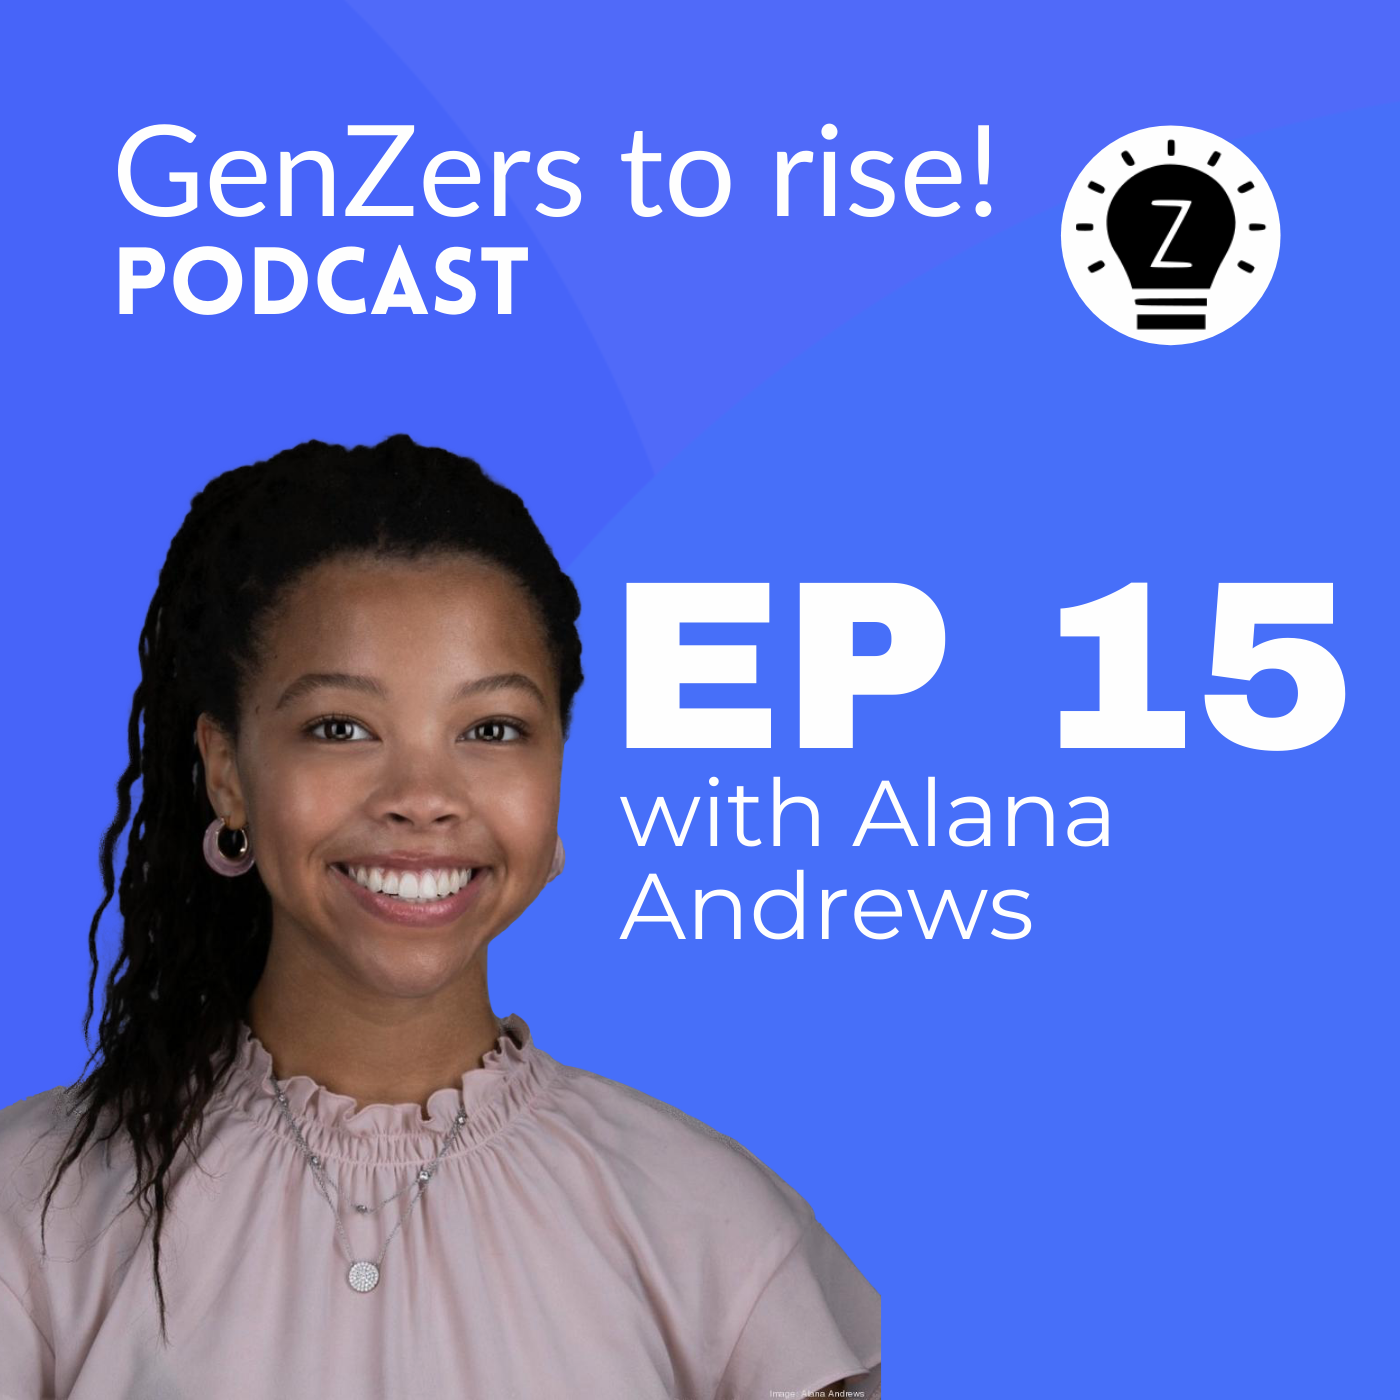 Ep 12 of genzers to rise! podcast: Building a clean vegan skincare brand while in college